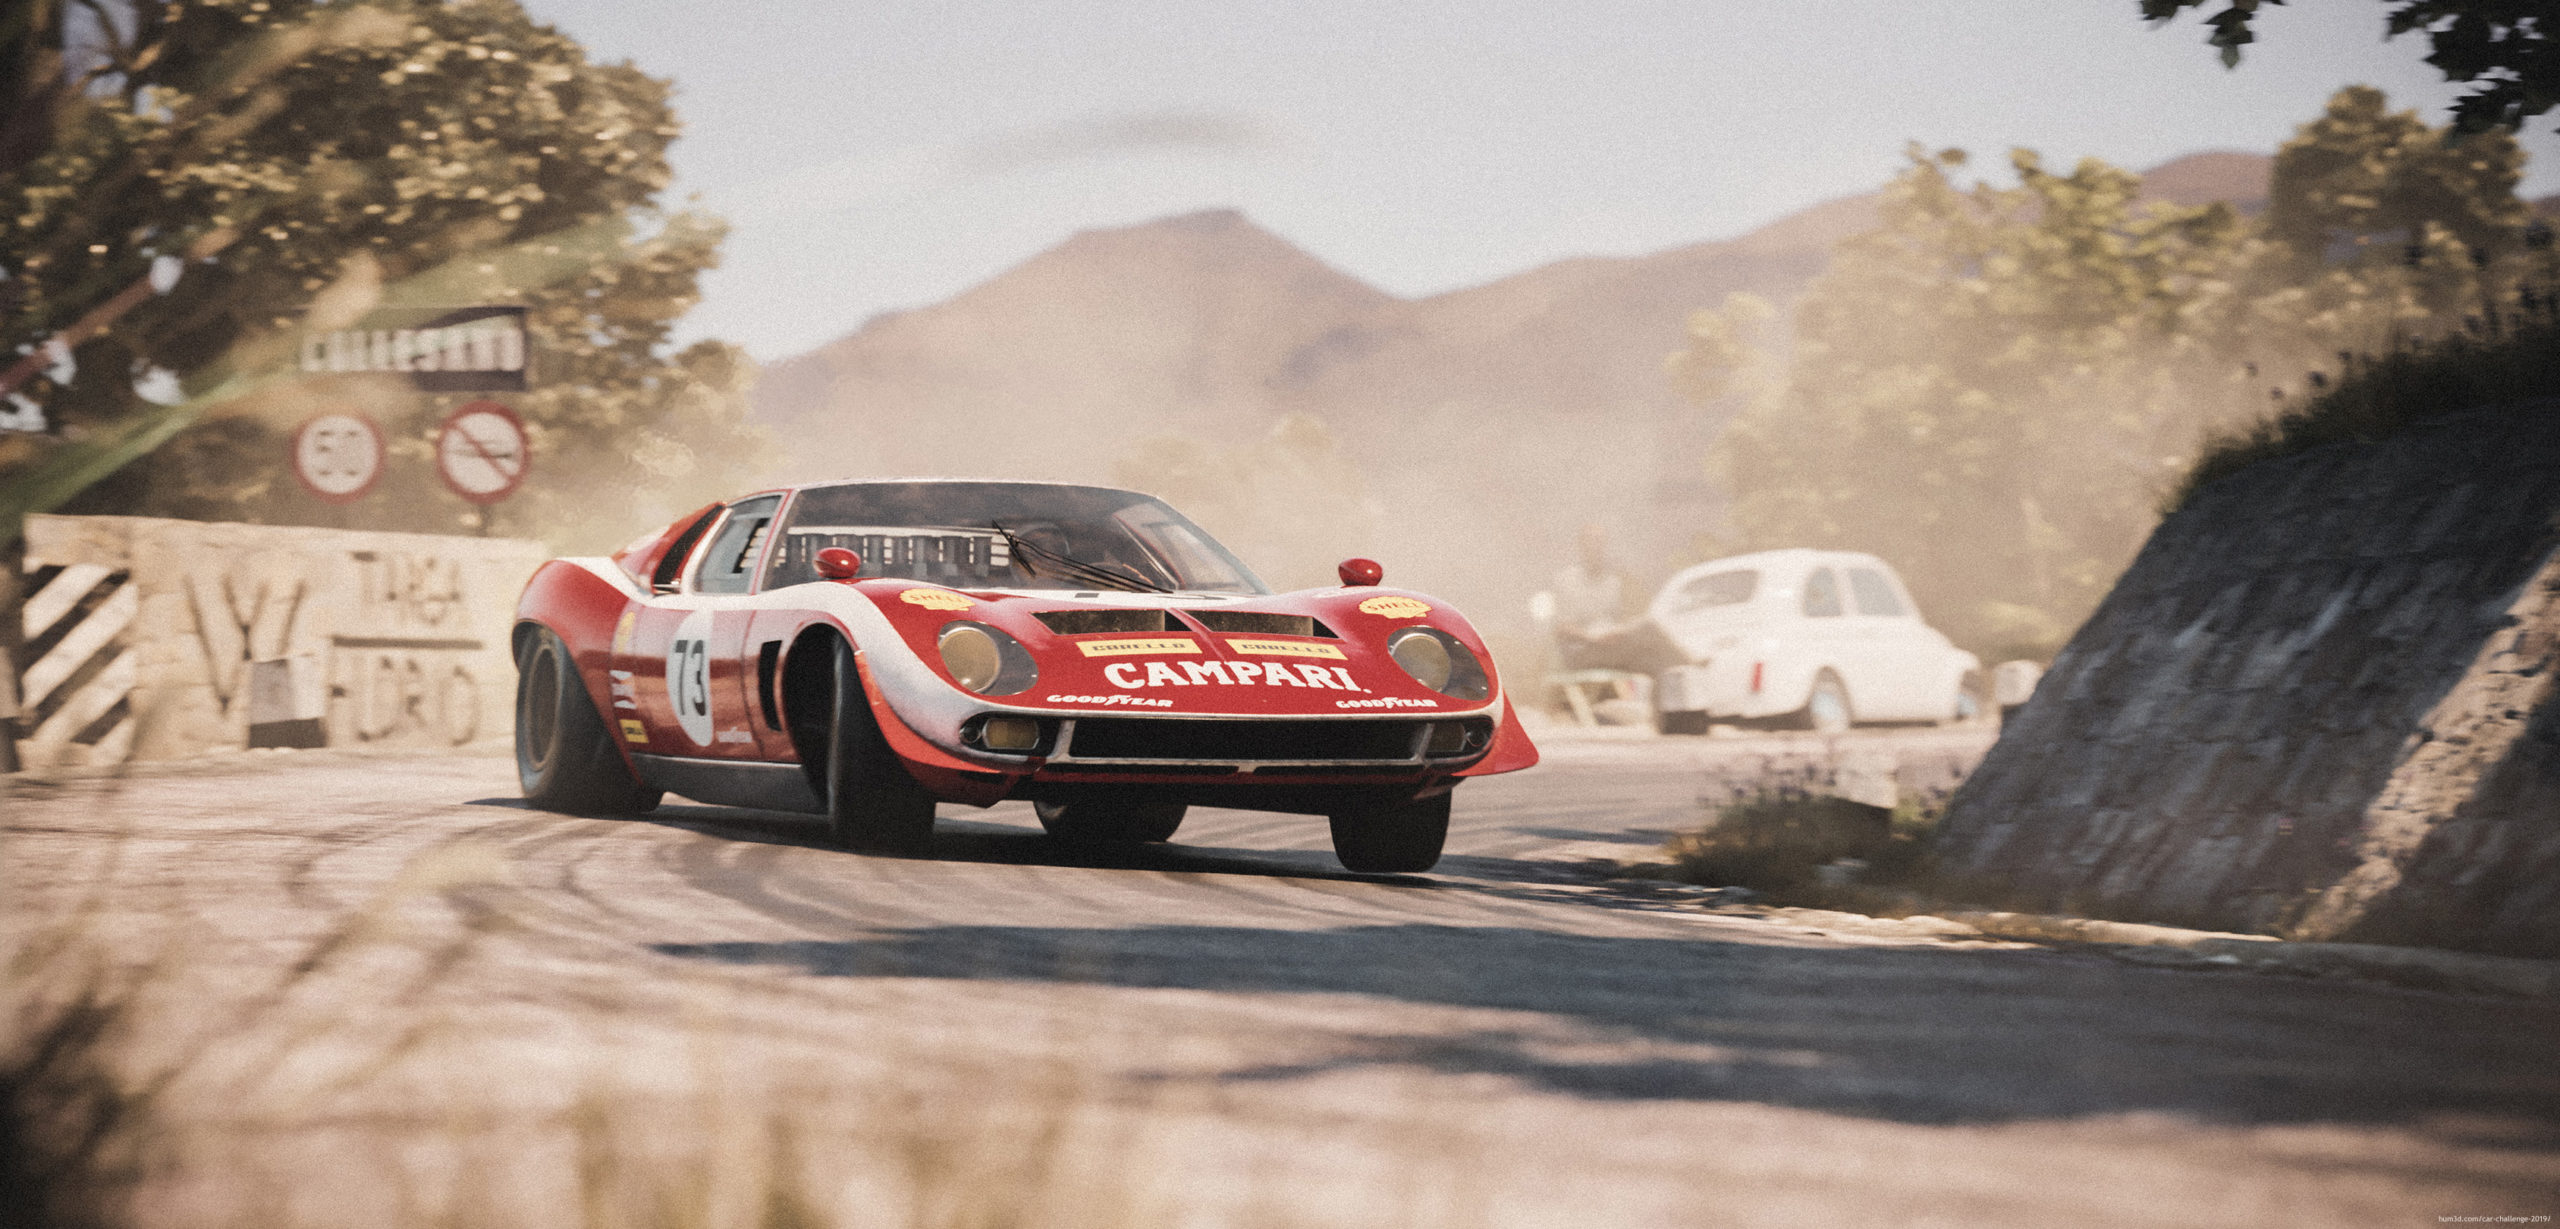 The Miura Jota prototype takes over Targa Florio 3d art